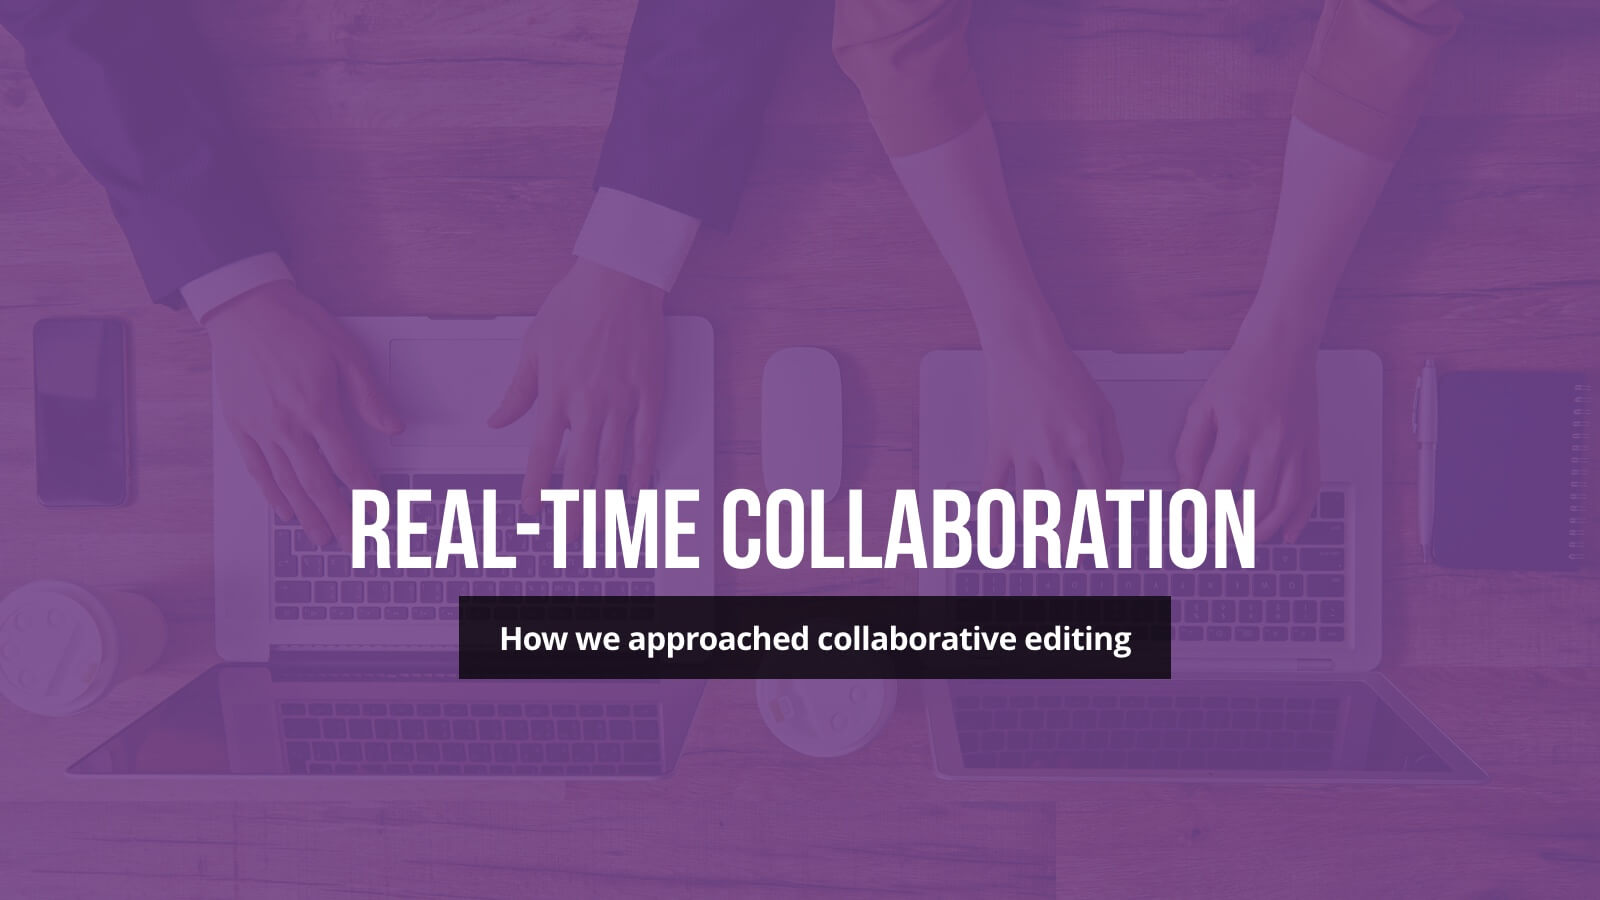 Real-time collaboration - How we approached collaborative editing